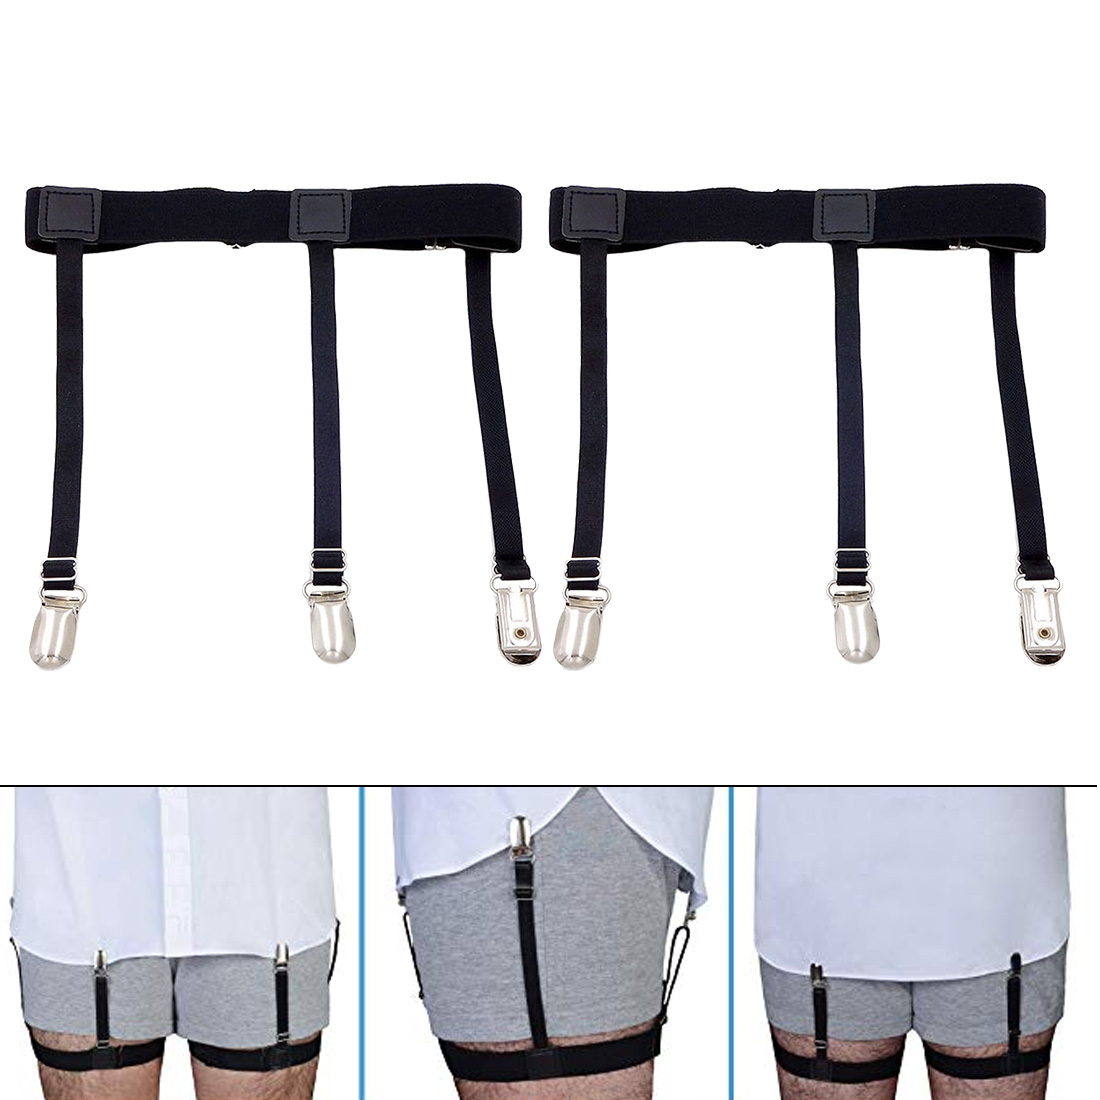 2 Pcs Men Shirt Stays   Belt   with Non-slip Locking Clips Keep Shirt Tucked Leg Thigh Suspender Garters Strap